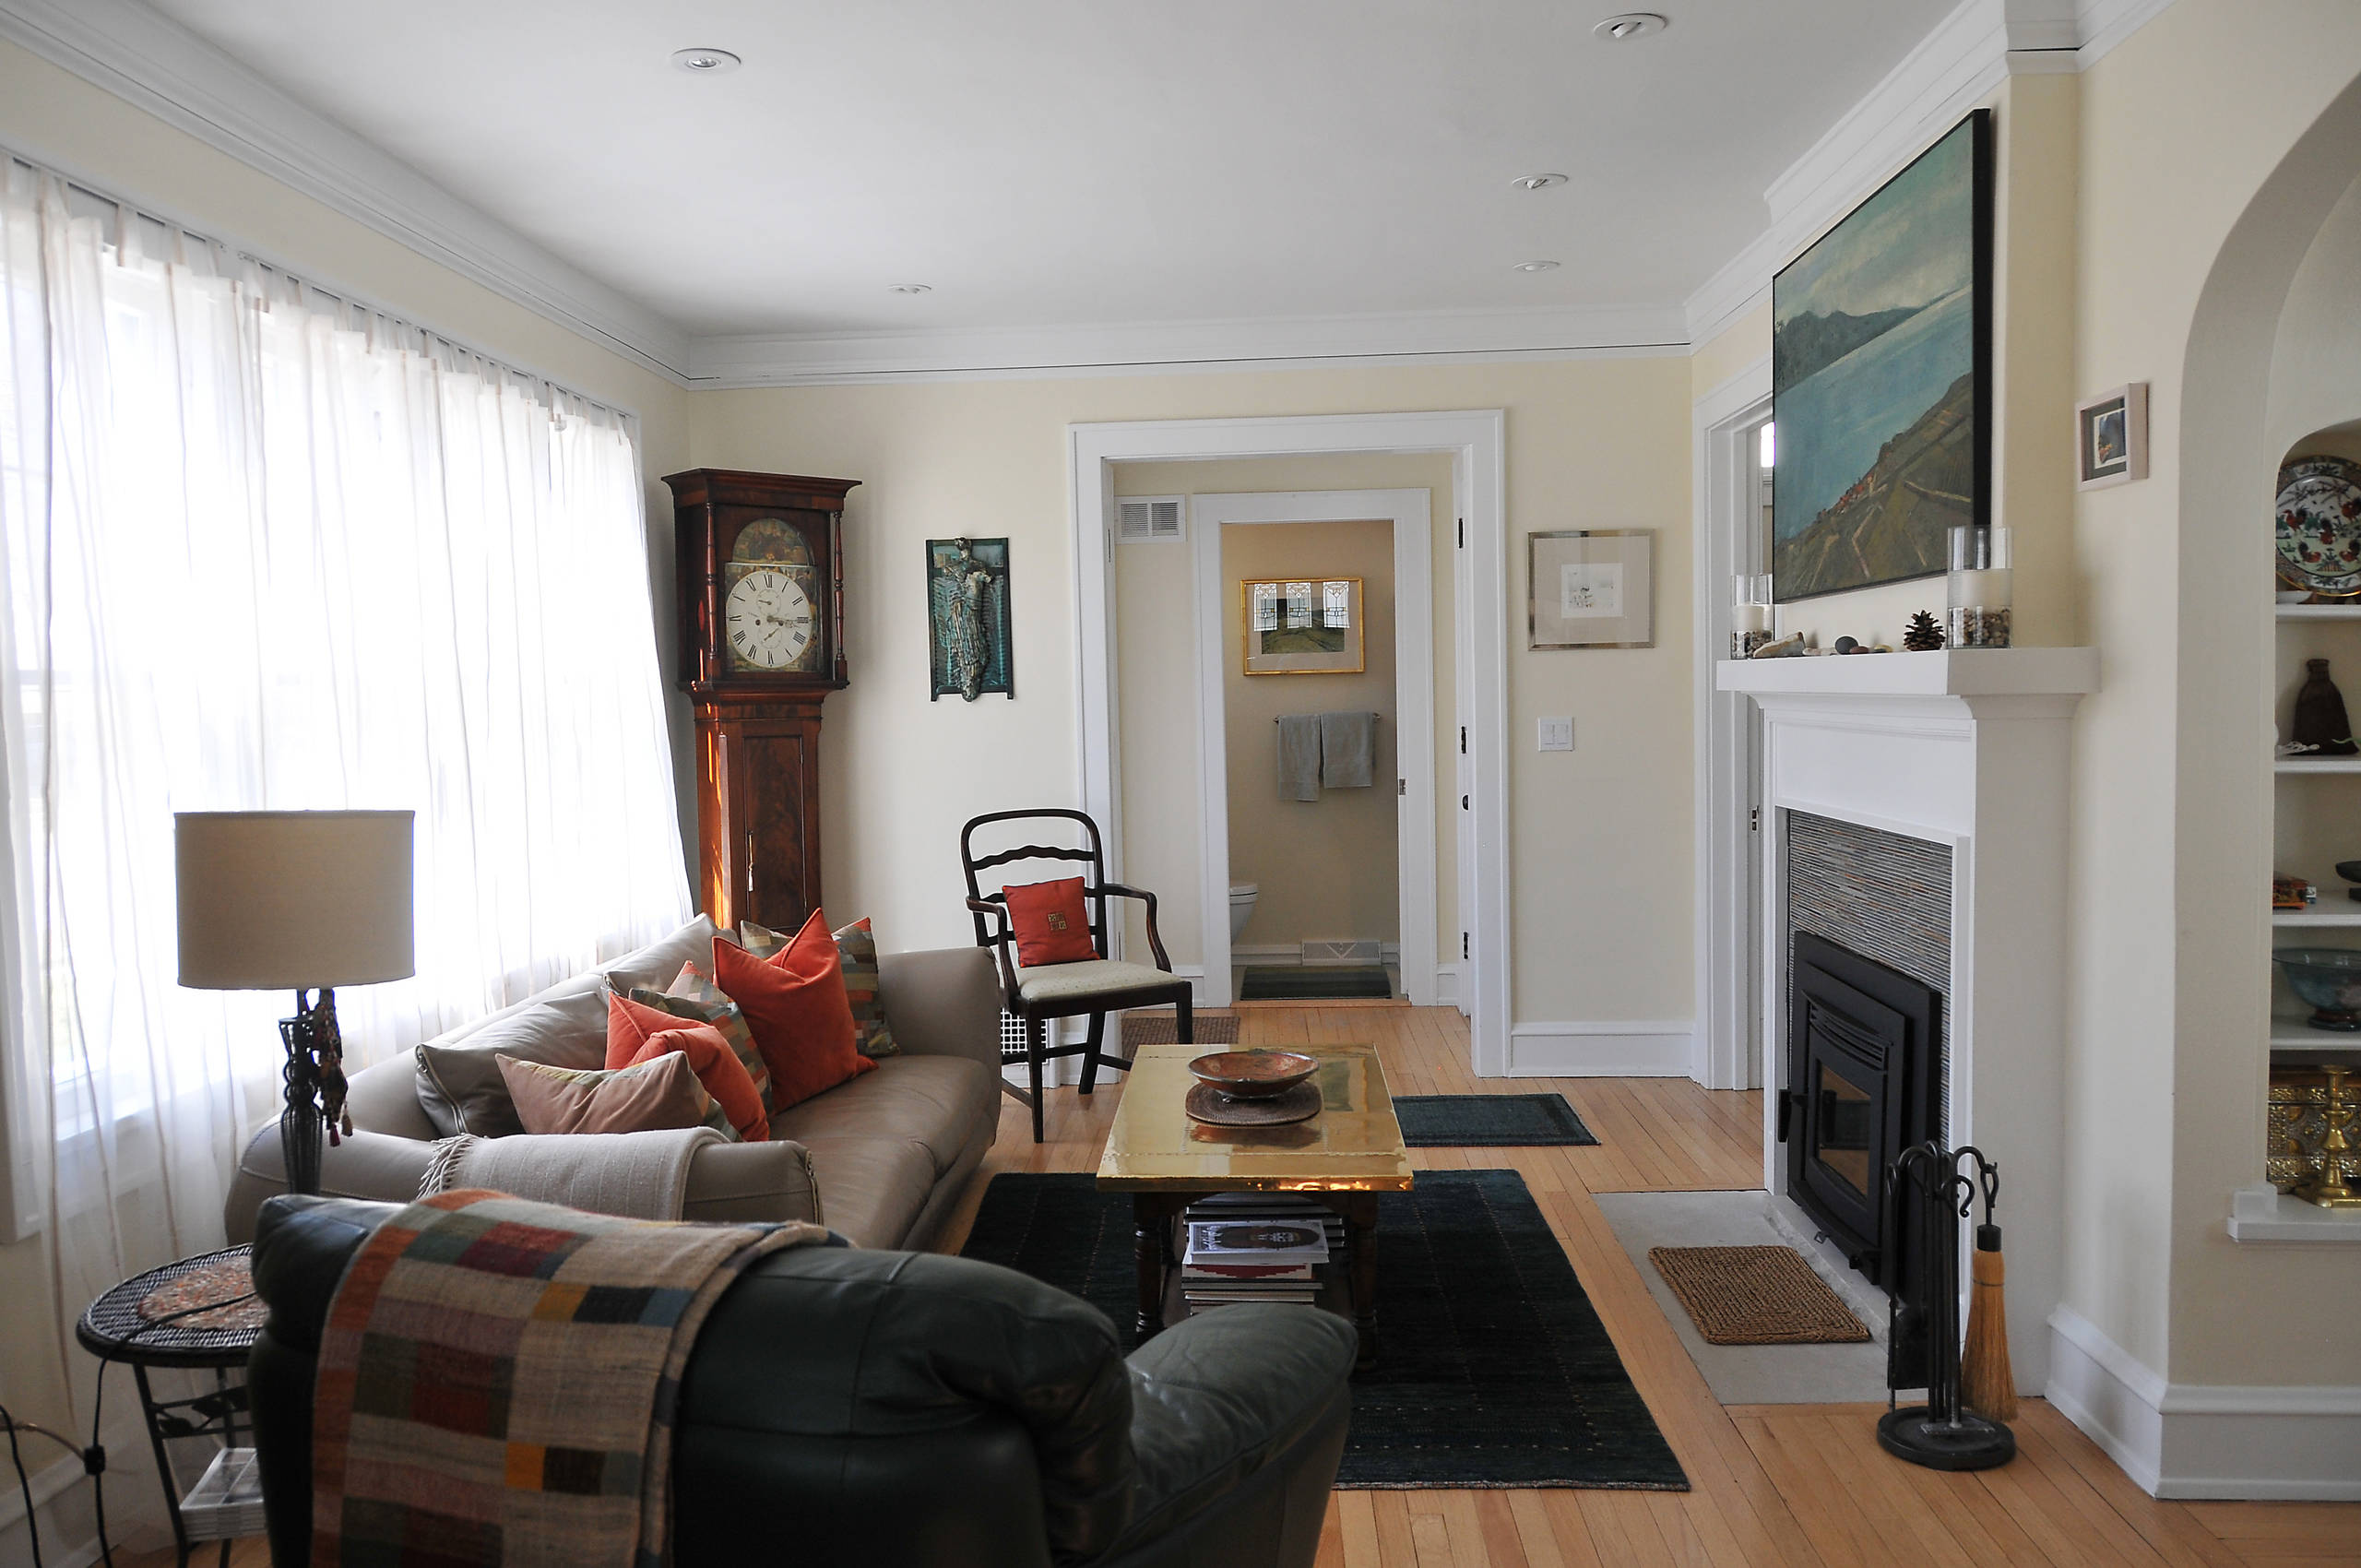 American Four Square Remodel, Shorewood, WI, Living Room, Entry and new Bathroom